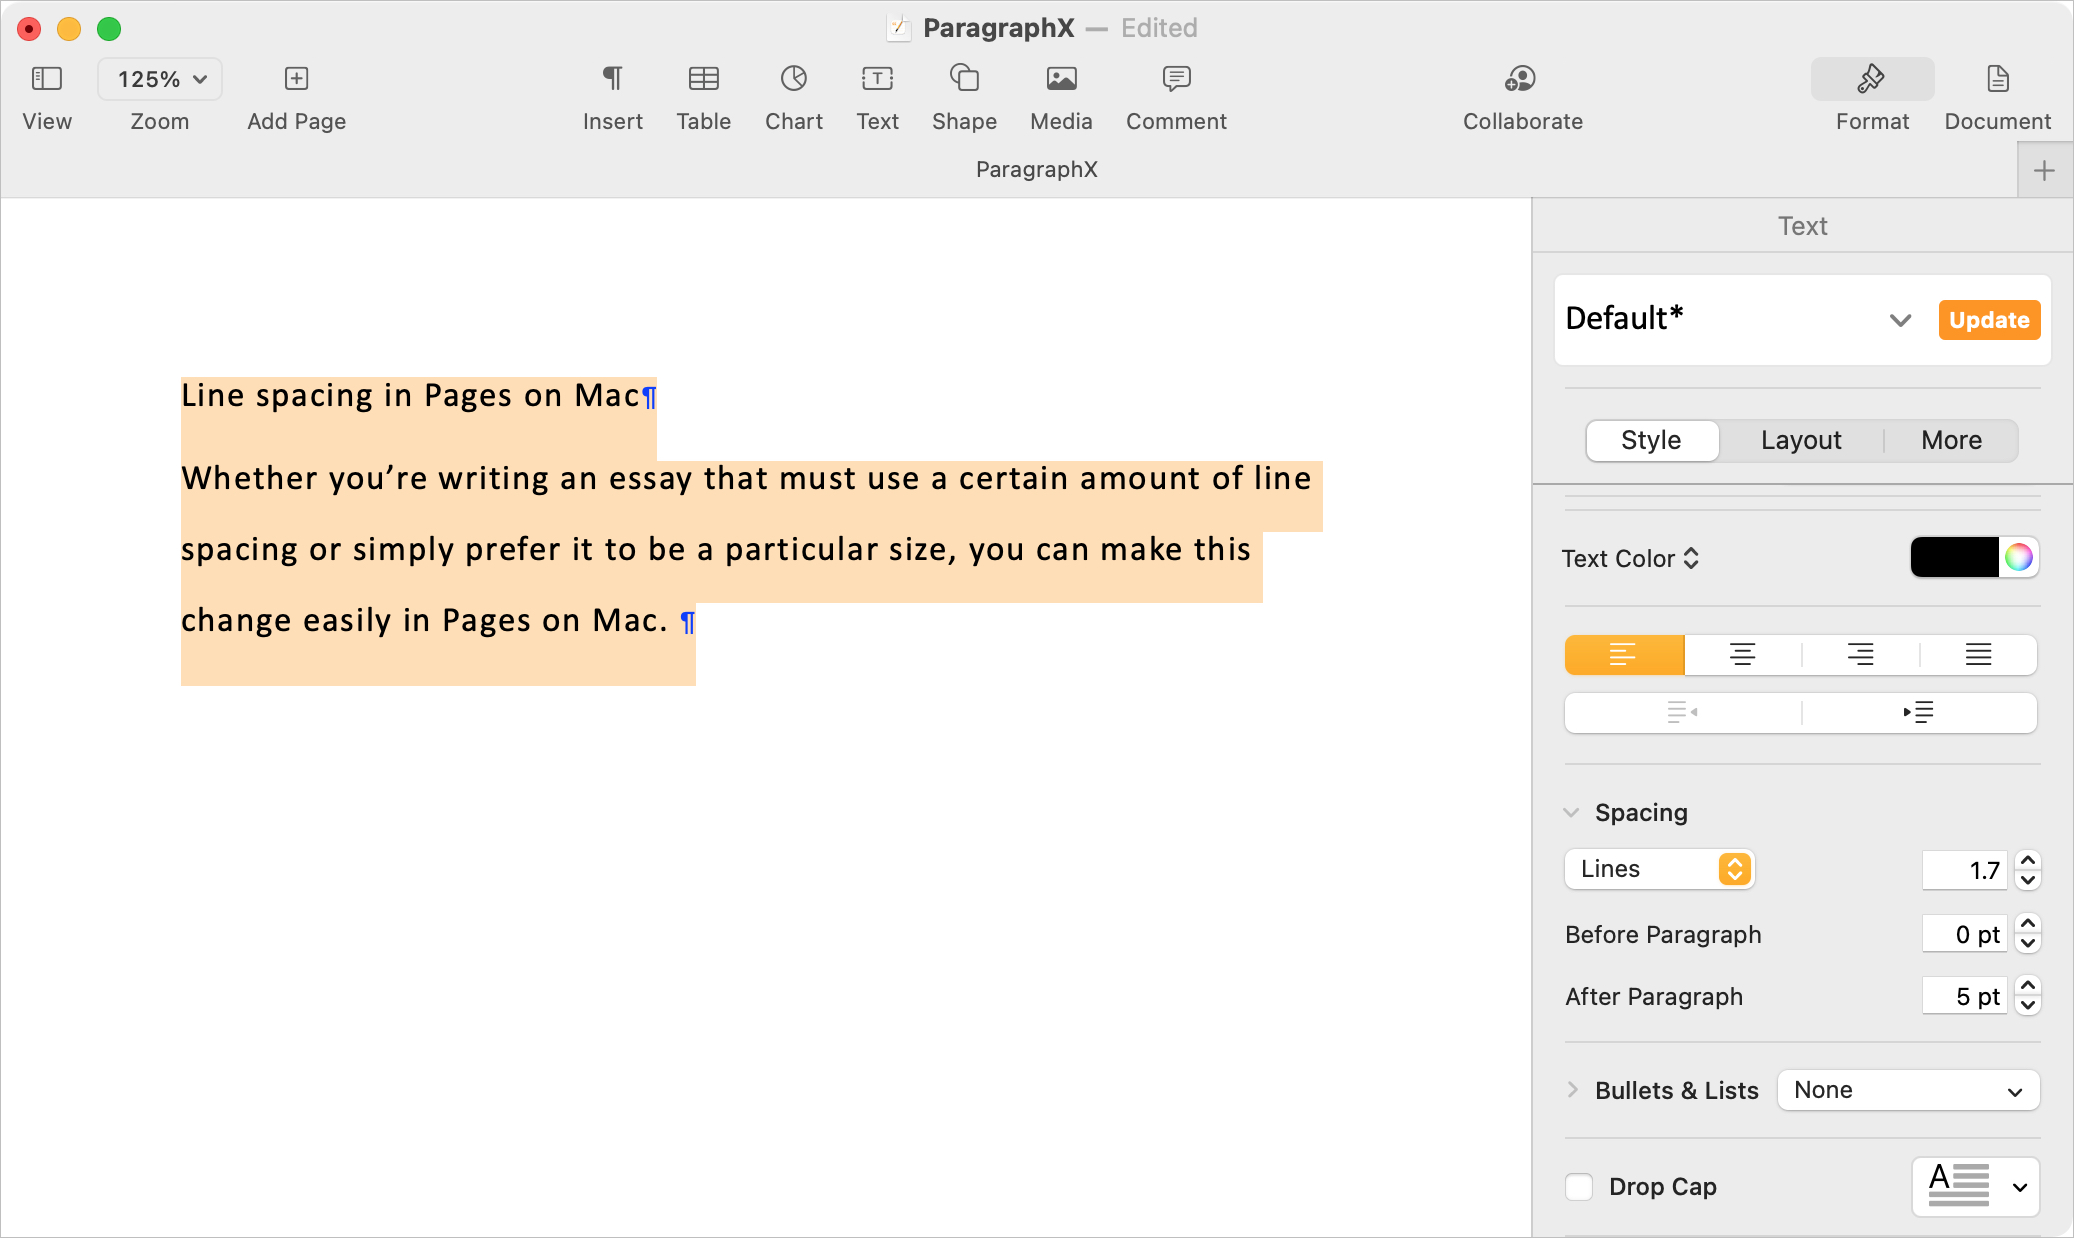 Adjusted Line Spacing in Pages on Mac